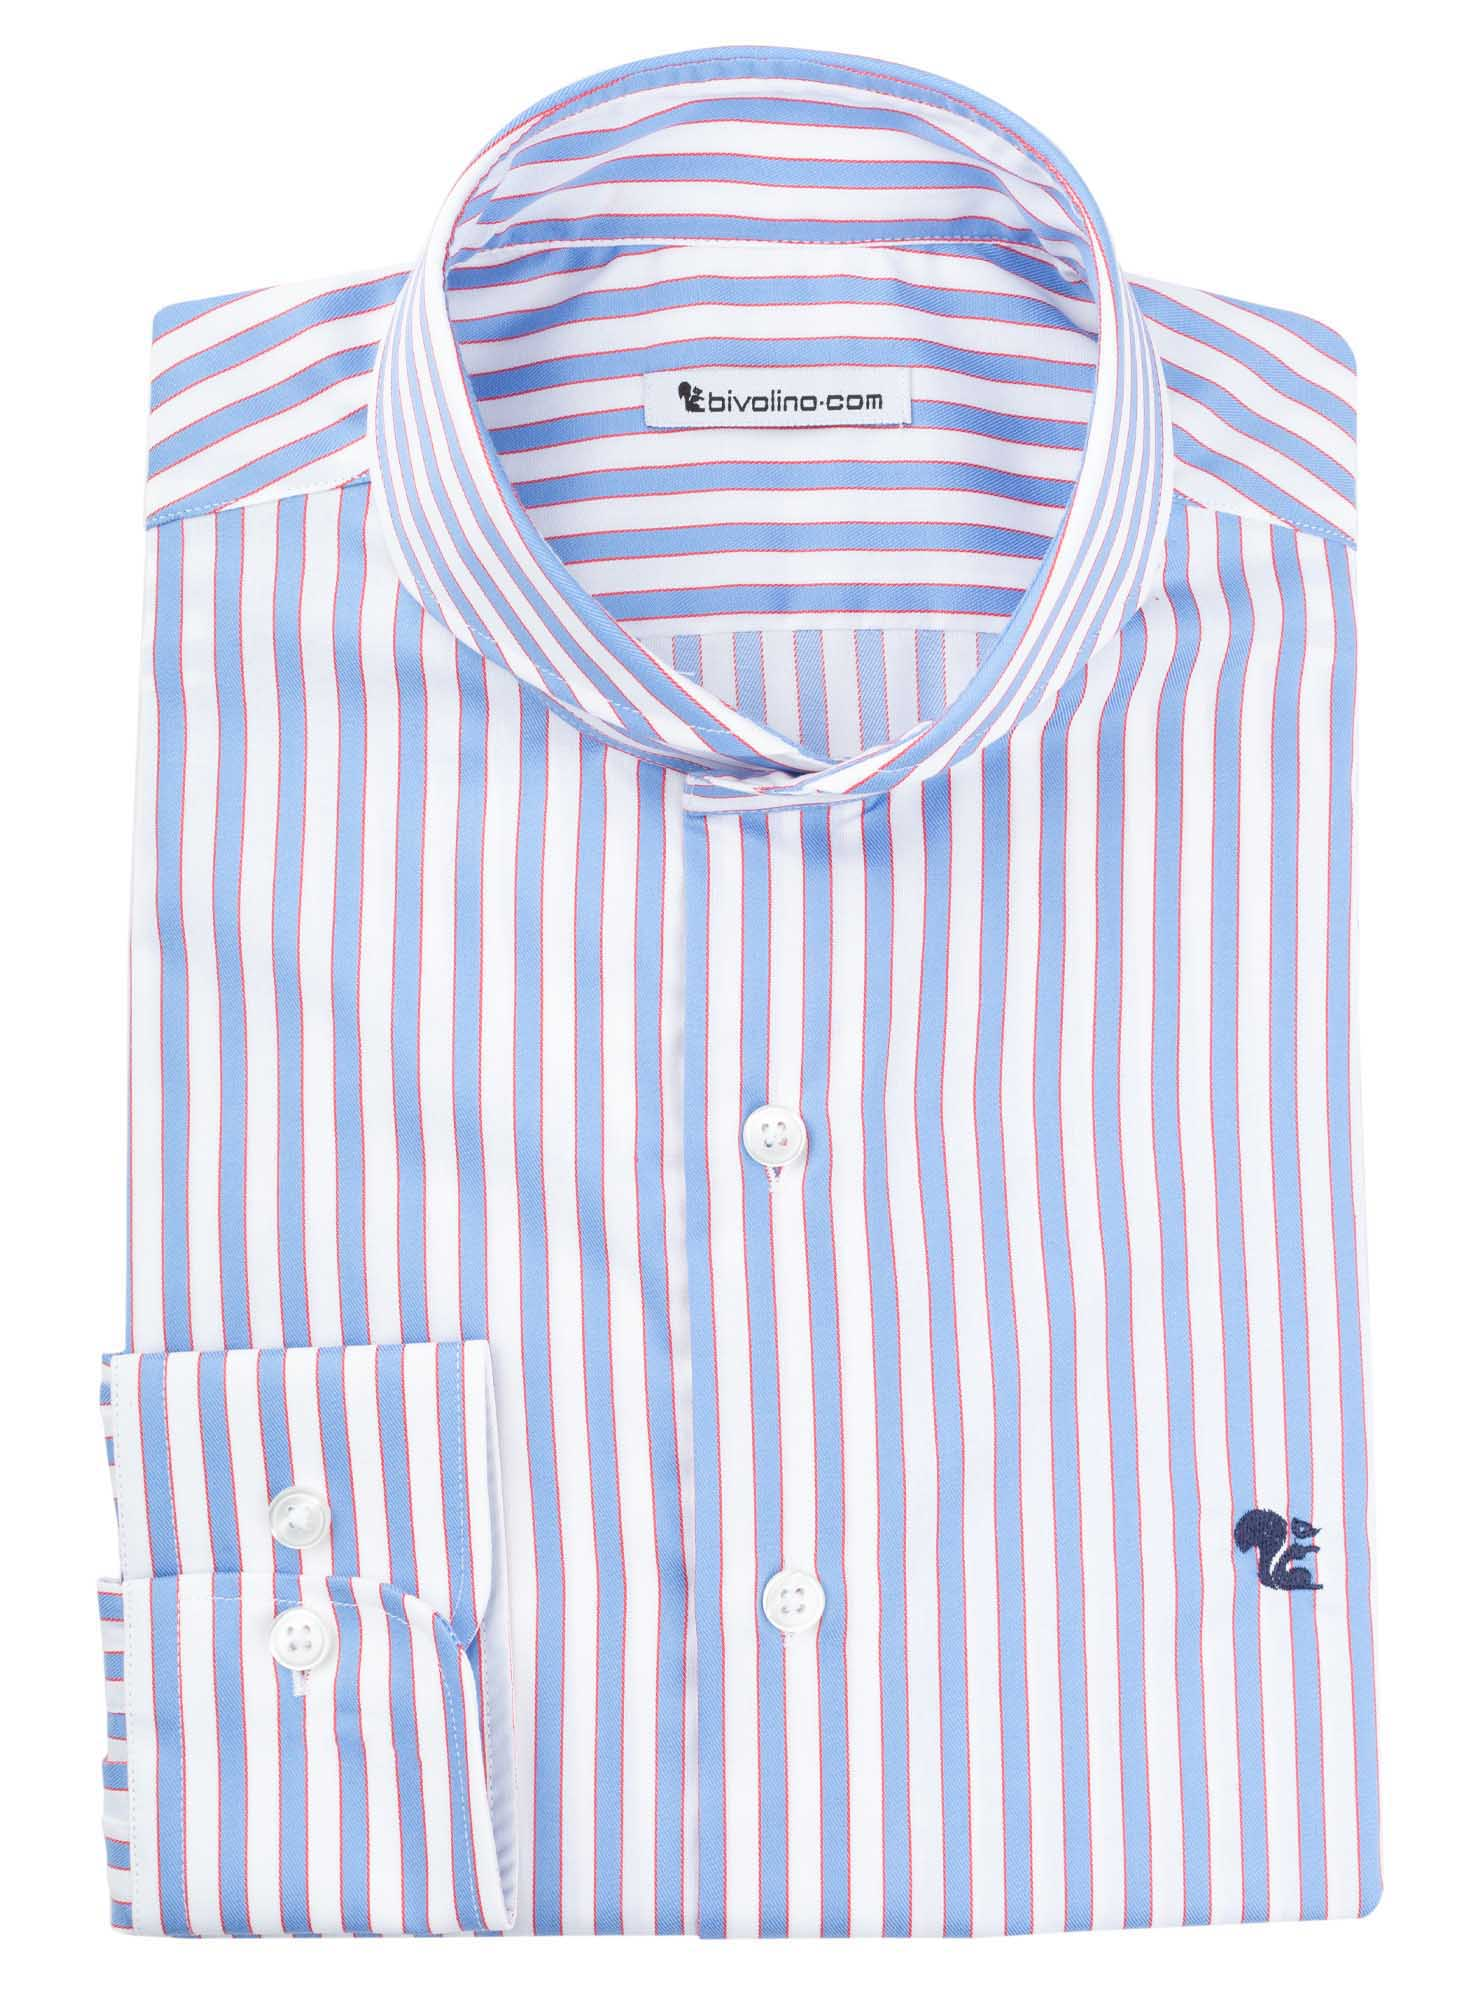 BERGAMO  - twill striped blue shirt - CELON 1